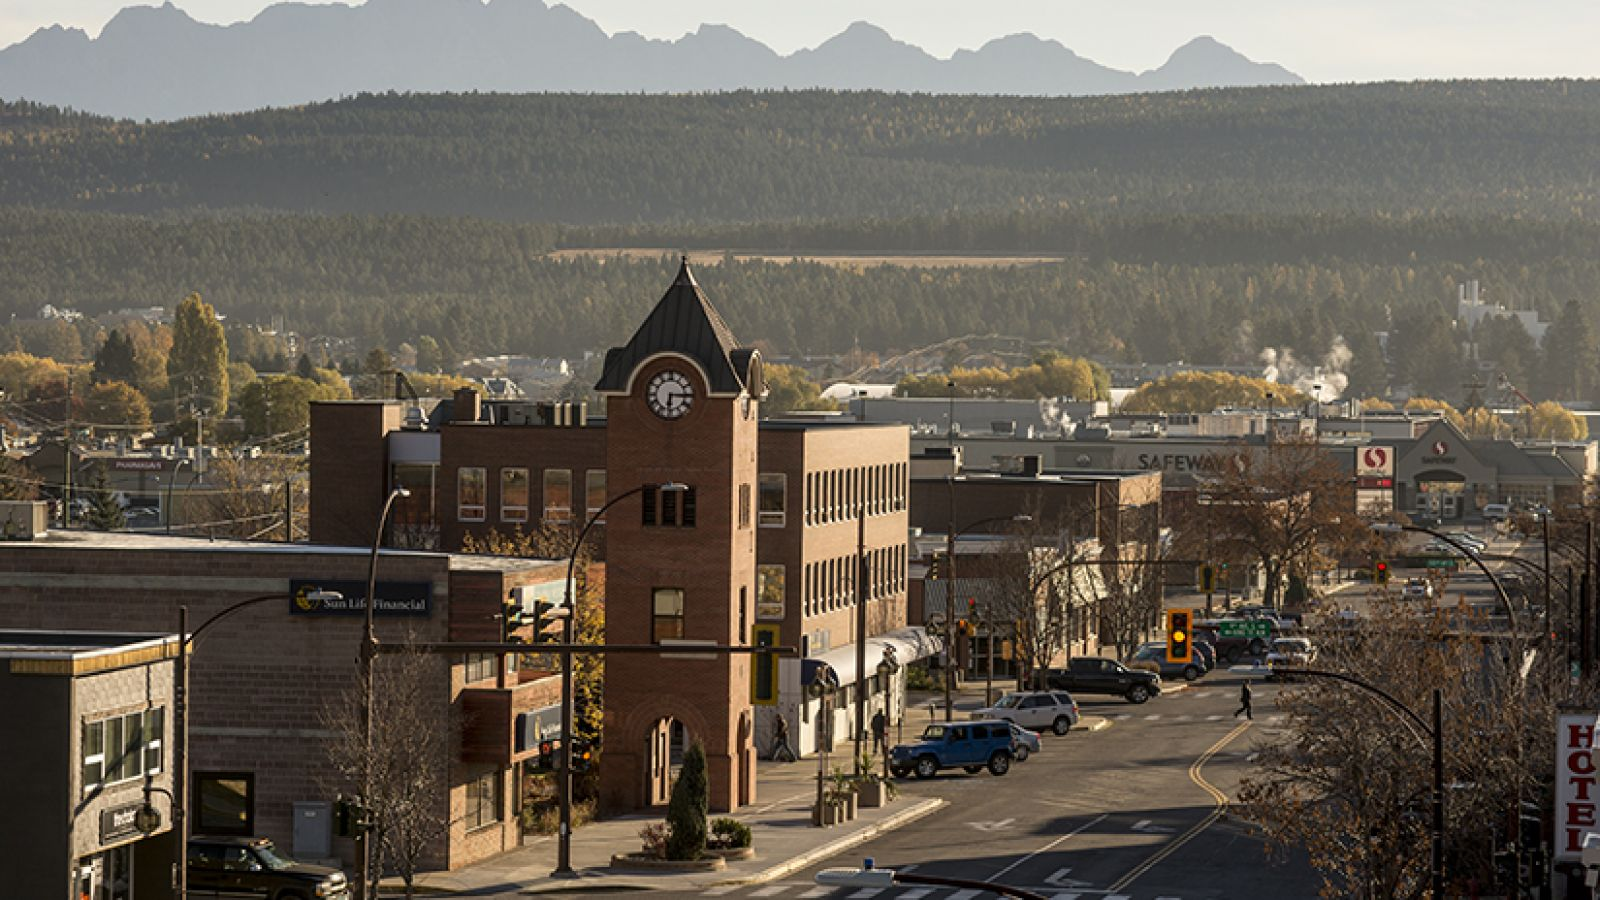 The city of Cranbrook.